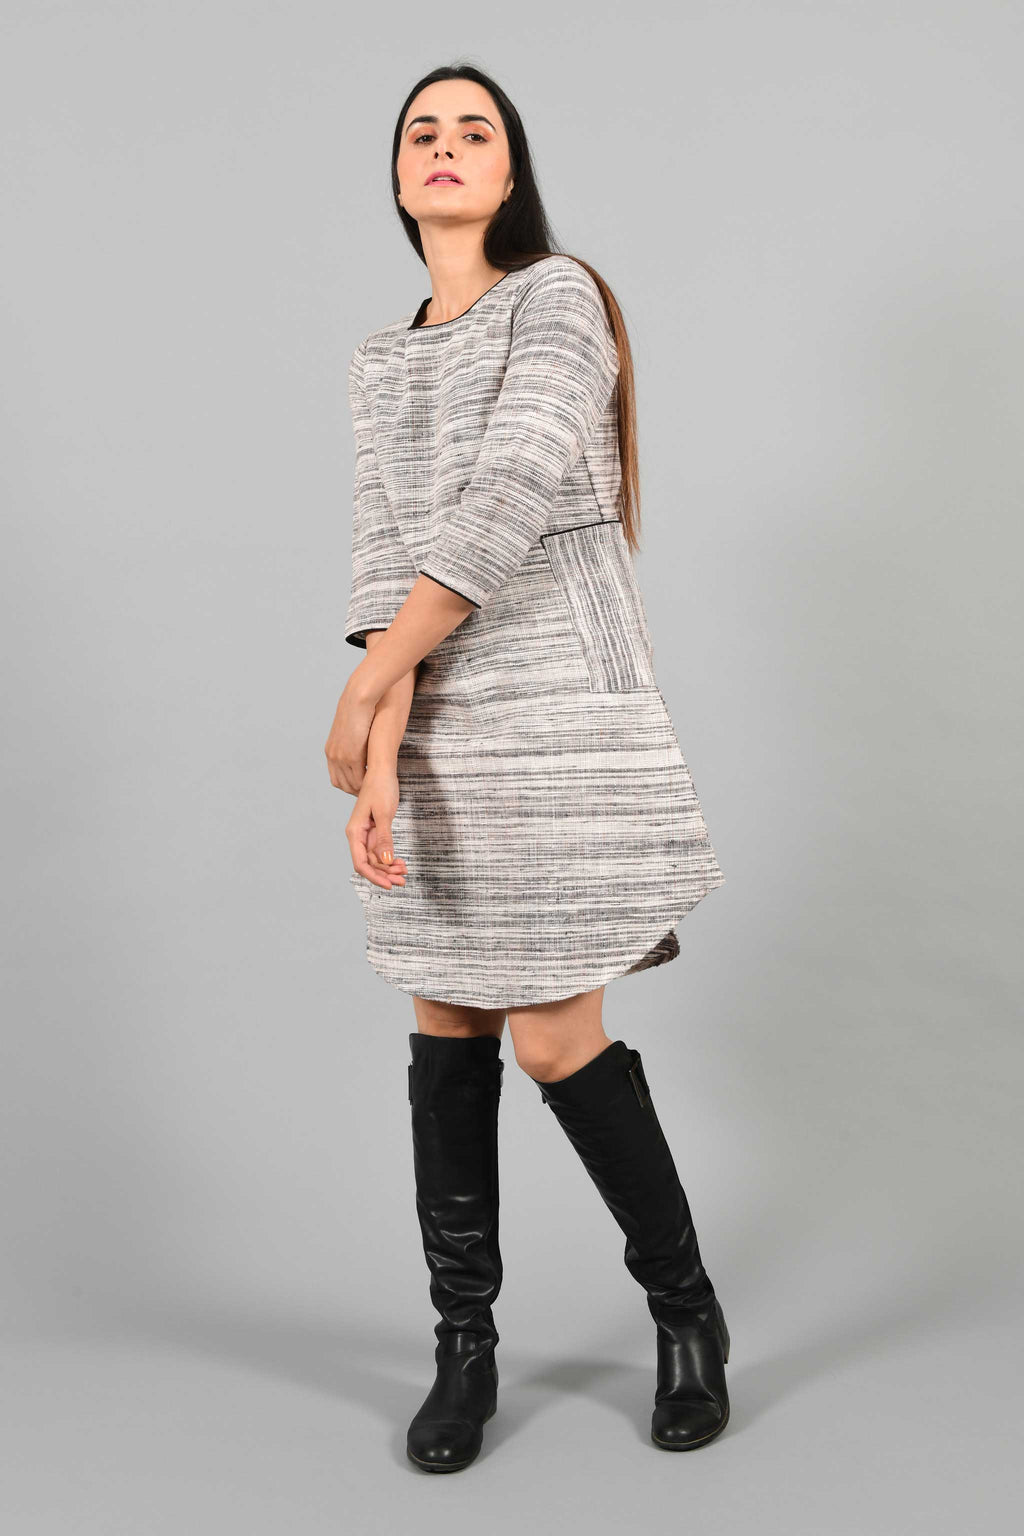 Front pose of an Indian Womenswear female model wearing Beige Brown handspun and handwoven cotton dress by Cotton Rack.